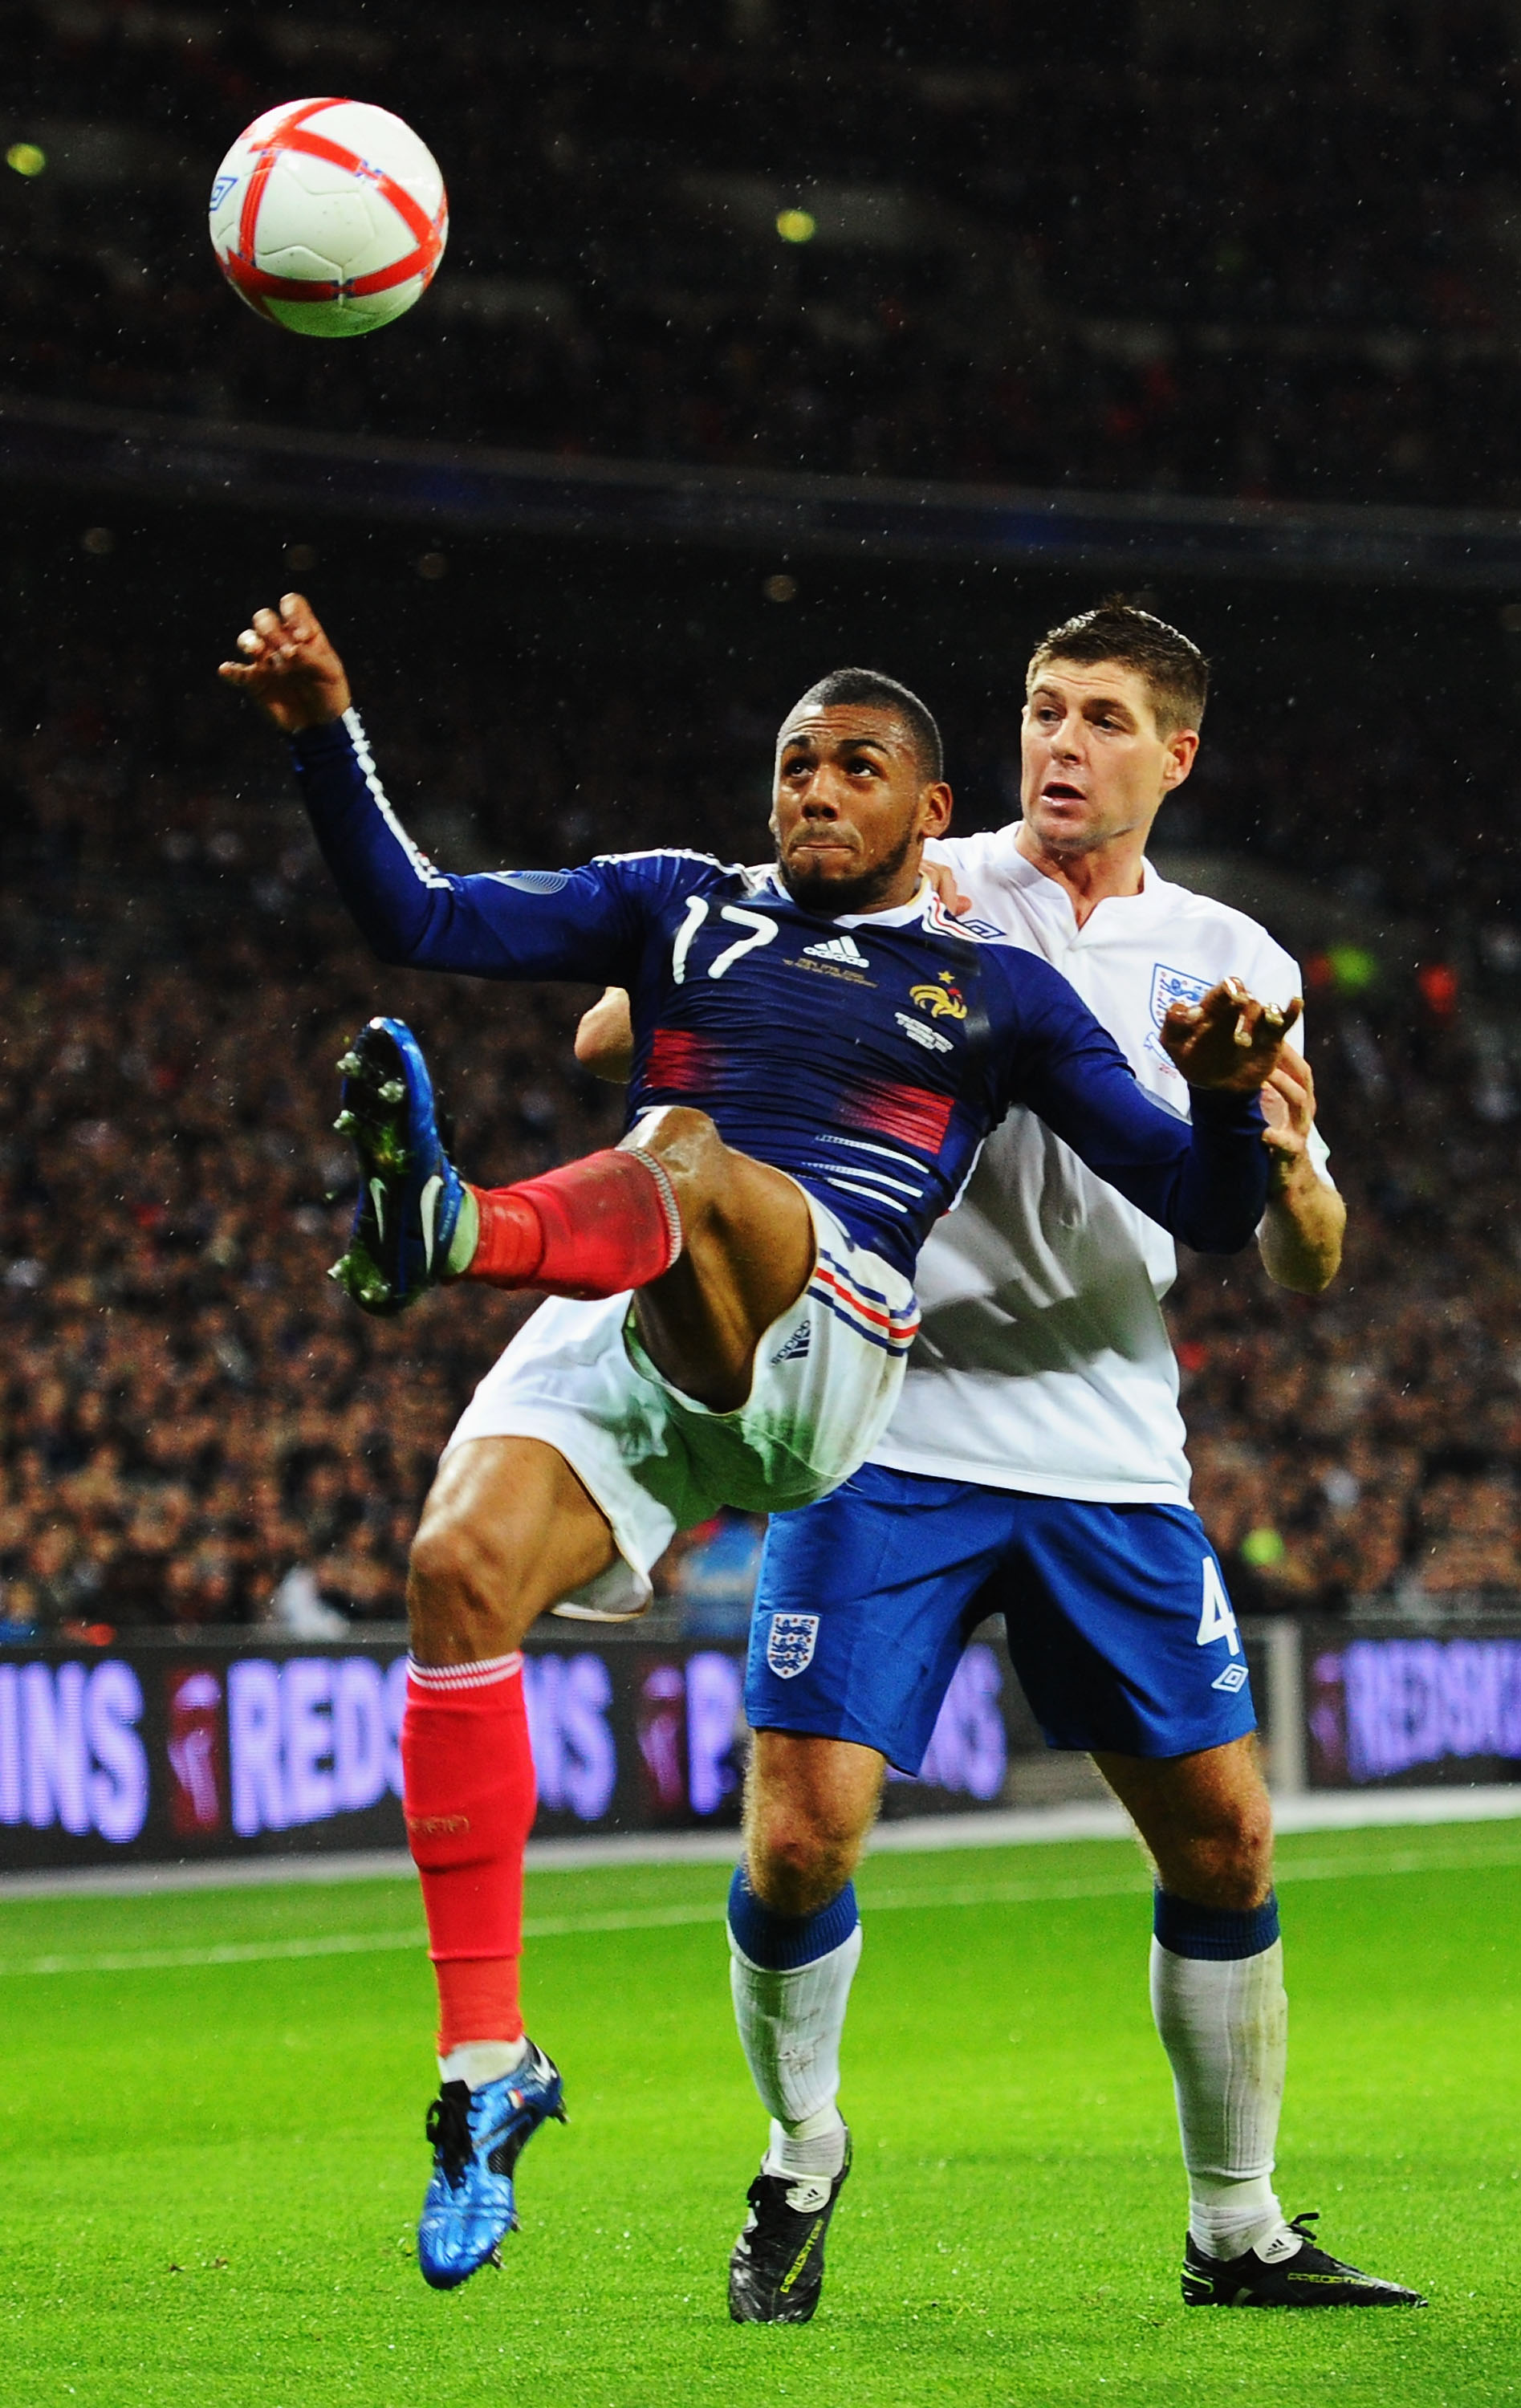 LONDON, ENGLAND - NOVEMBER 17:  Steven Gerrard of England is beaten to the ball by Yann M'Vila of France during the international friendly match between England and France at Wembley Stadium on November 17, 2010 in London, England.  (Photo by Mike Hewitt/